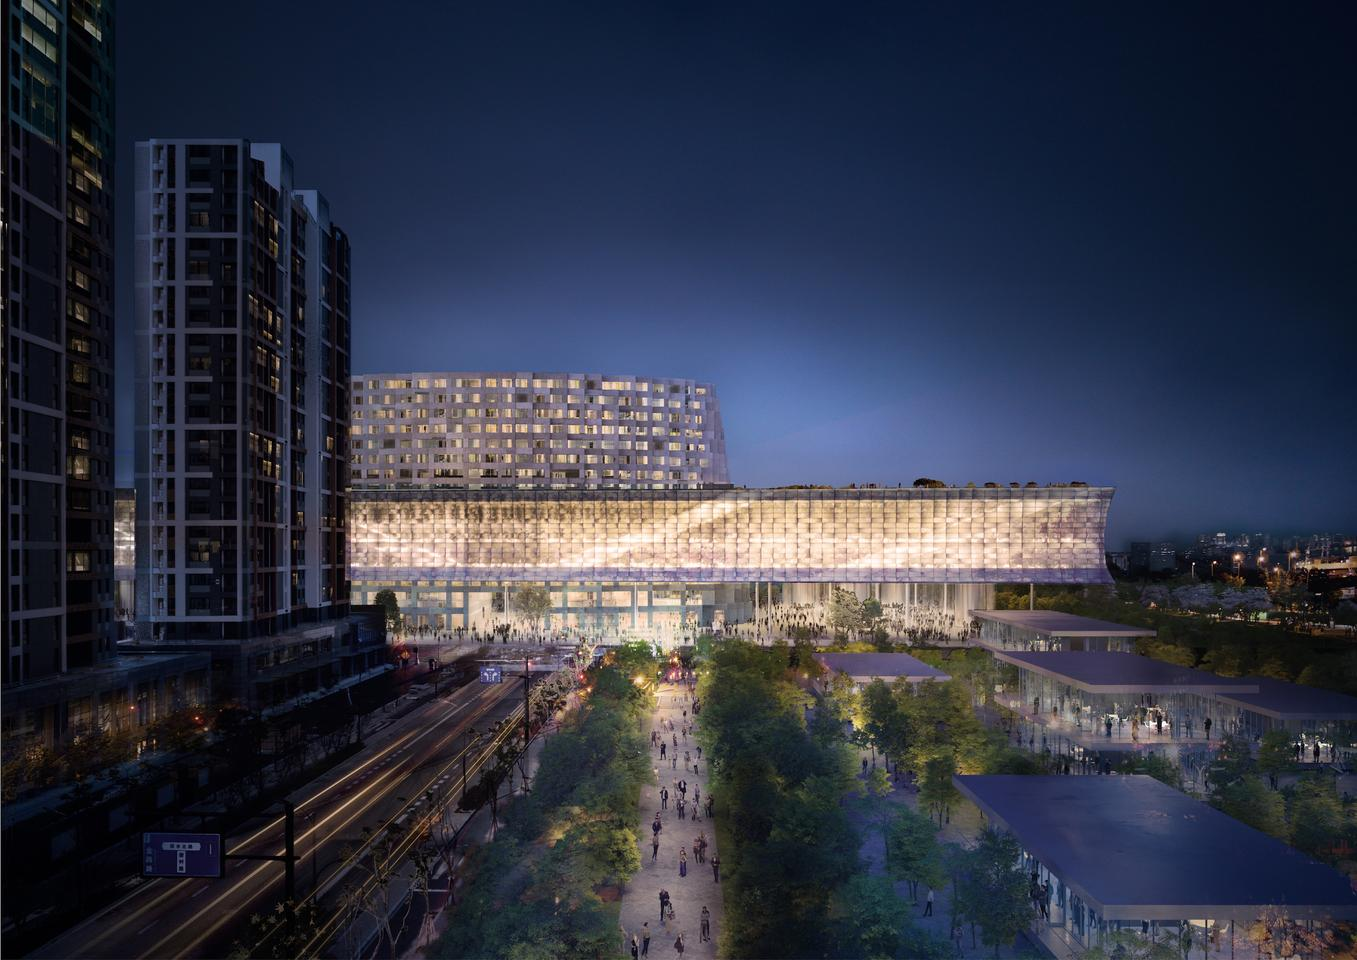 The Grand Canal Museum Complex's design is inspired by China's Grand Canal